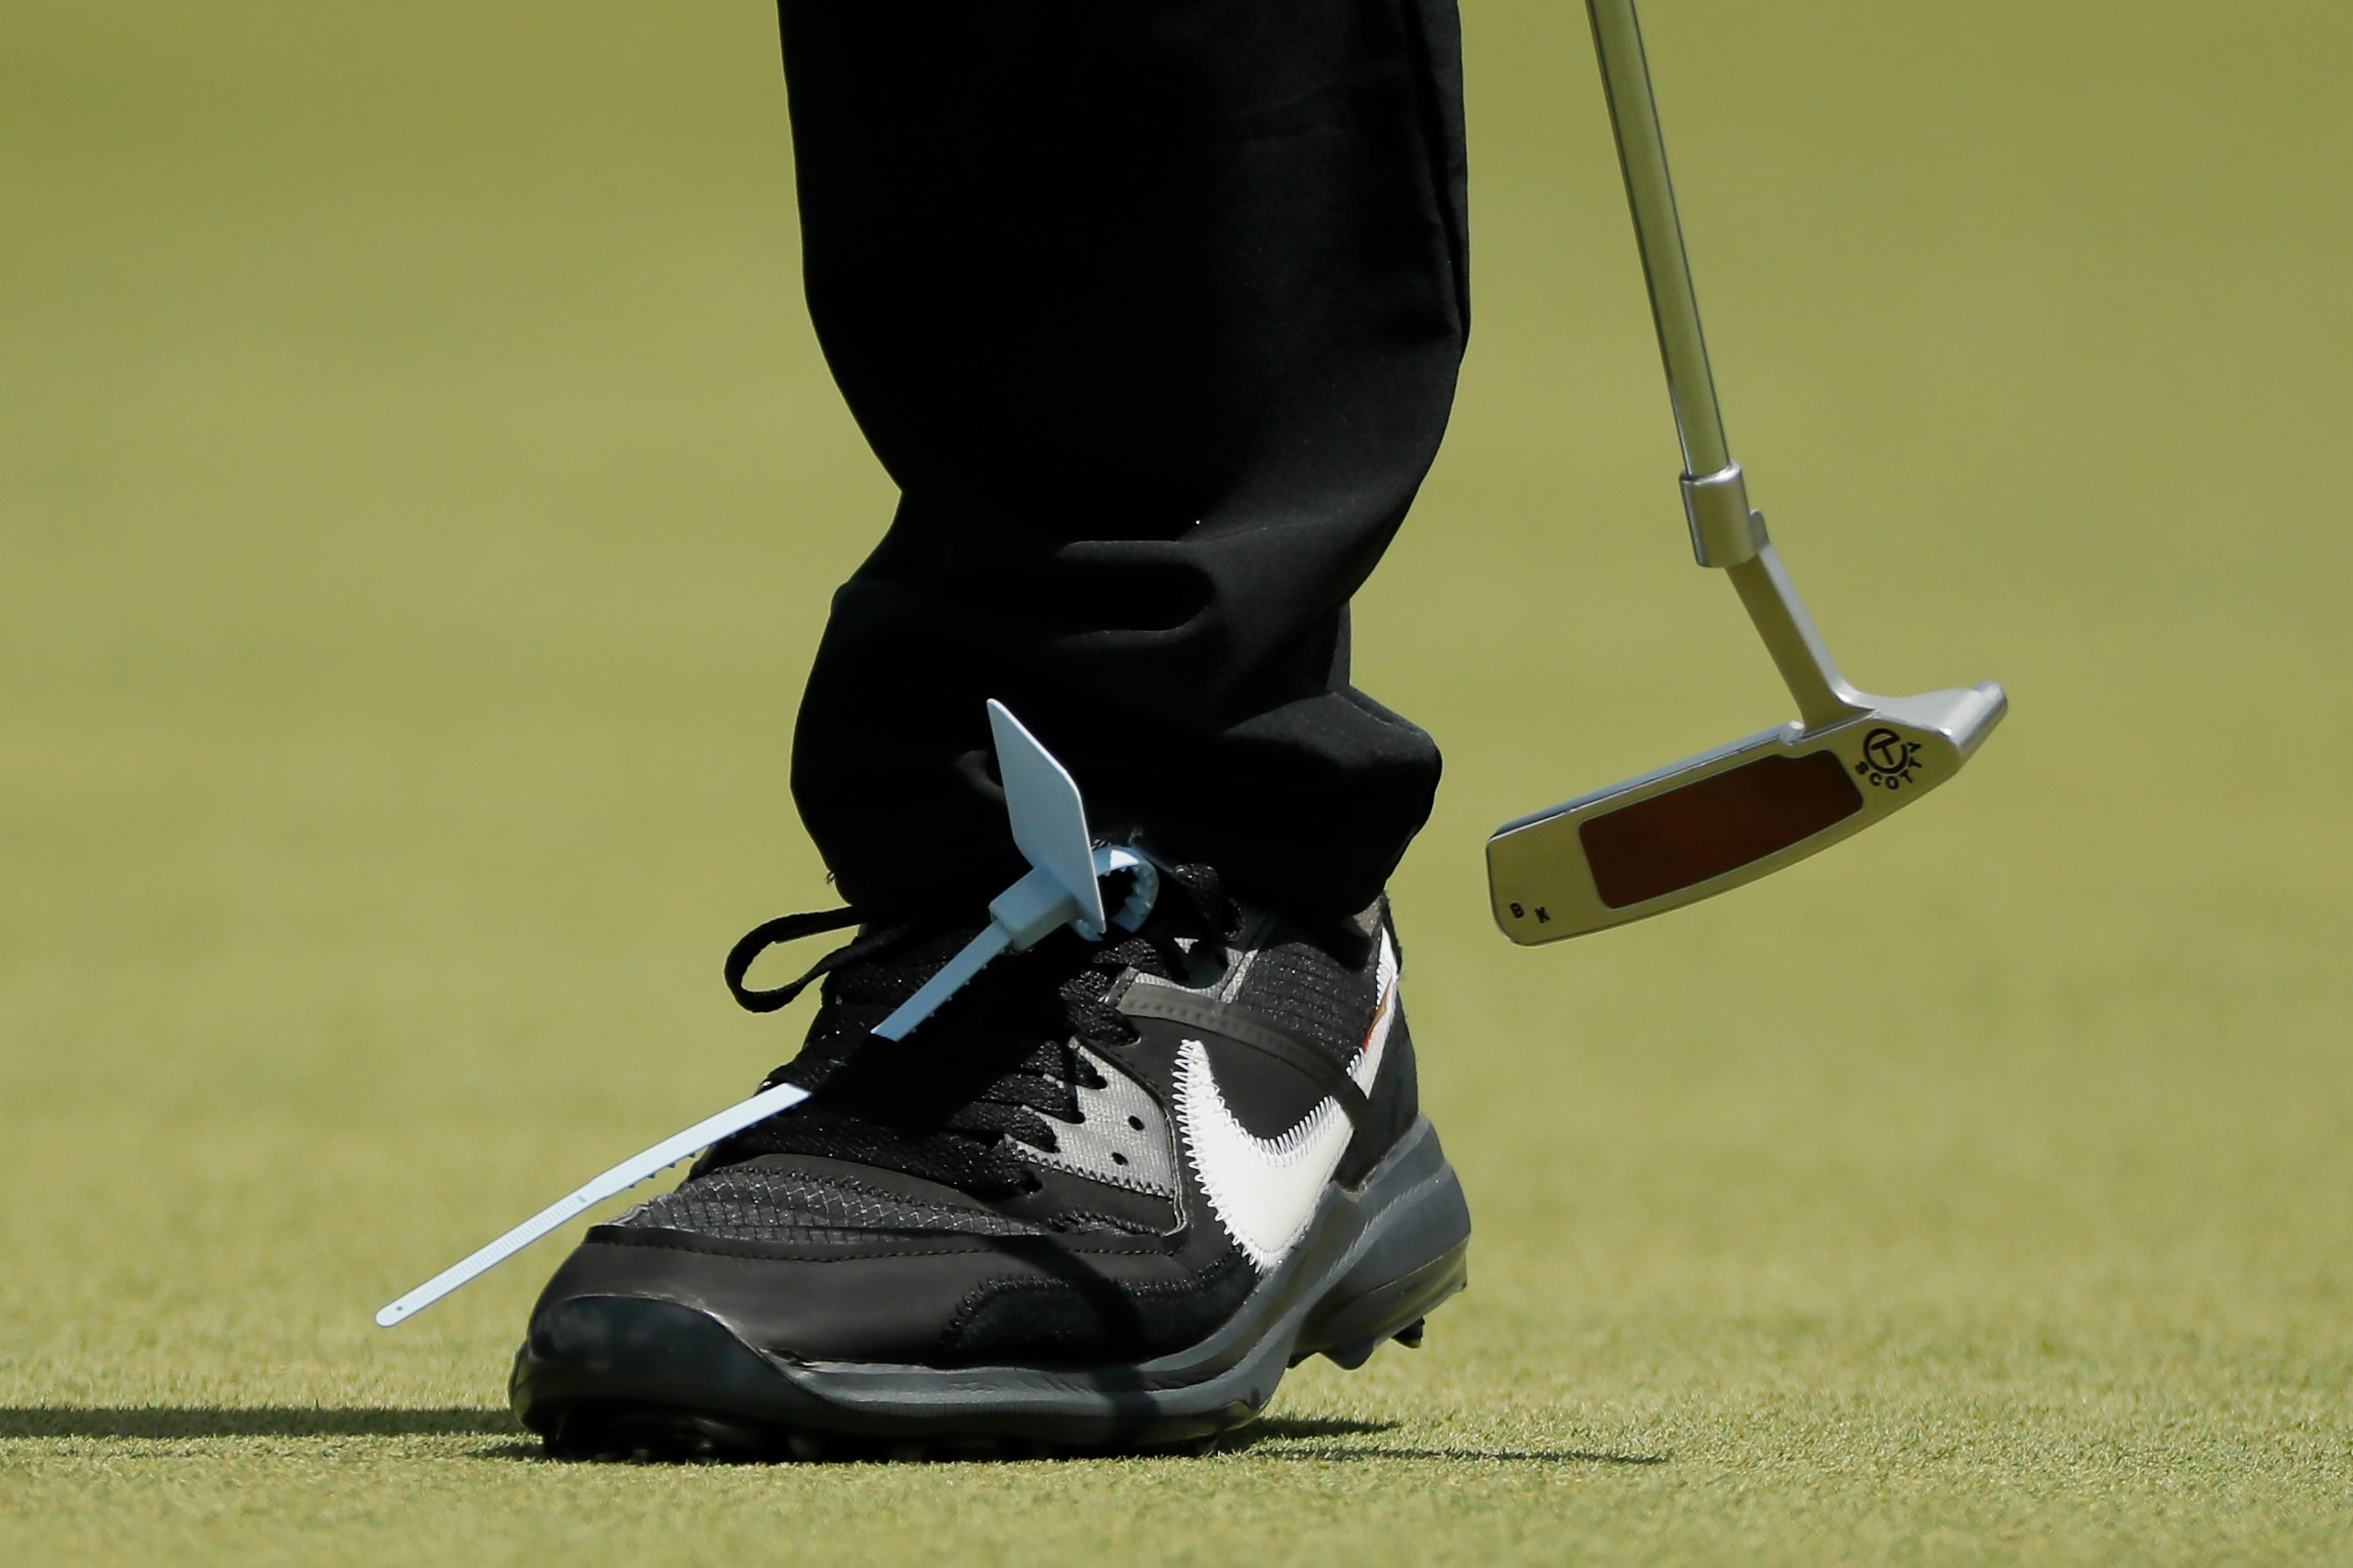 shoes at the Tour Championship